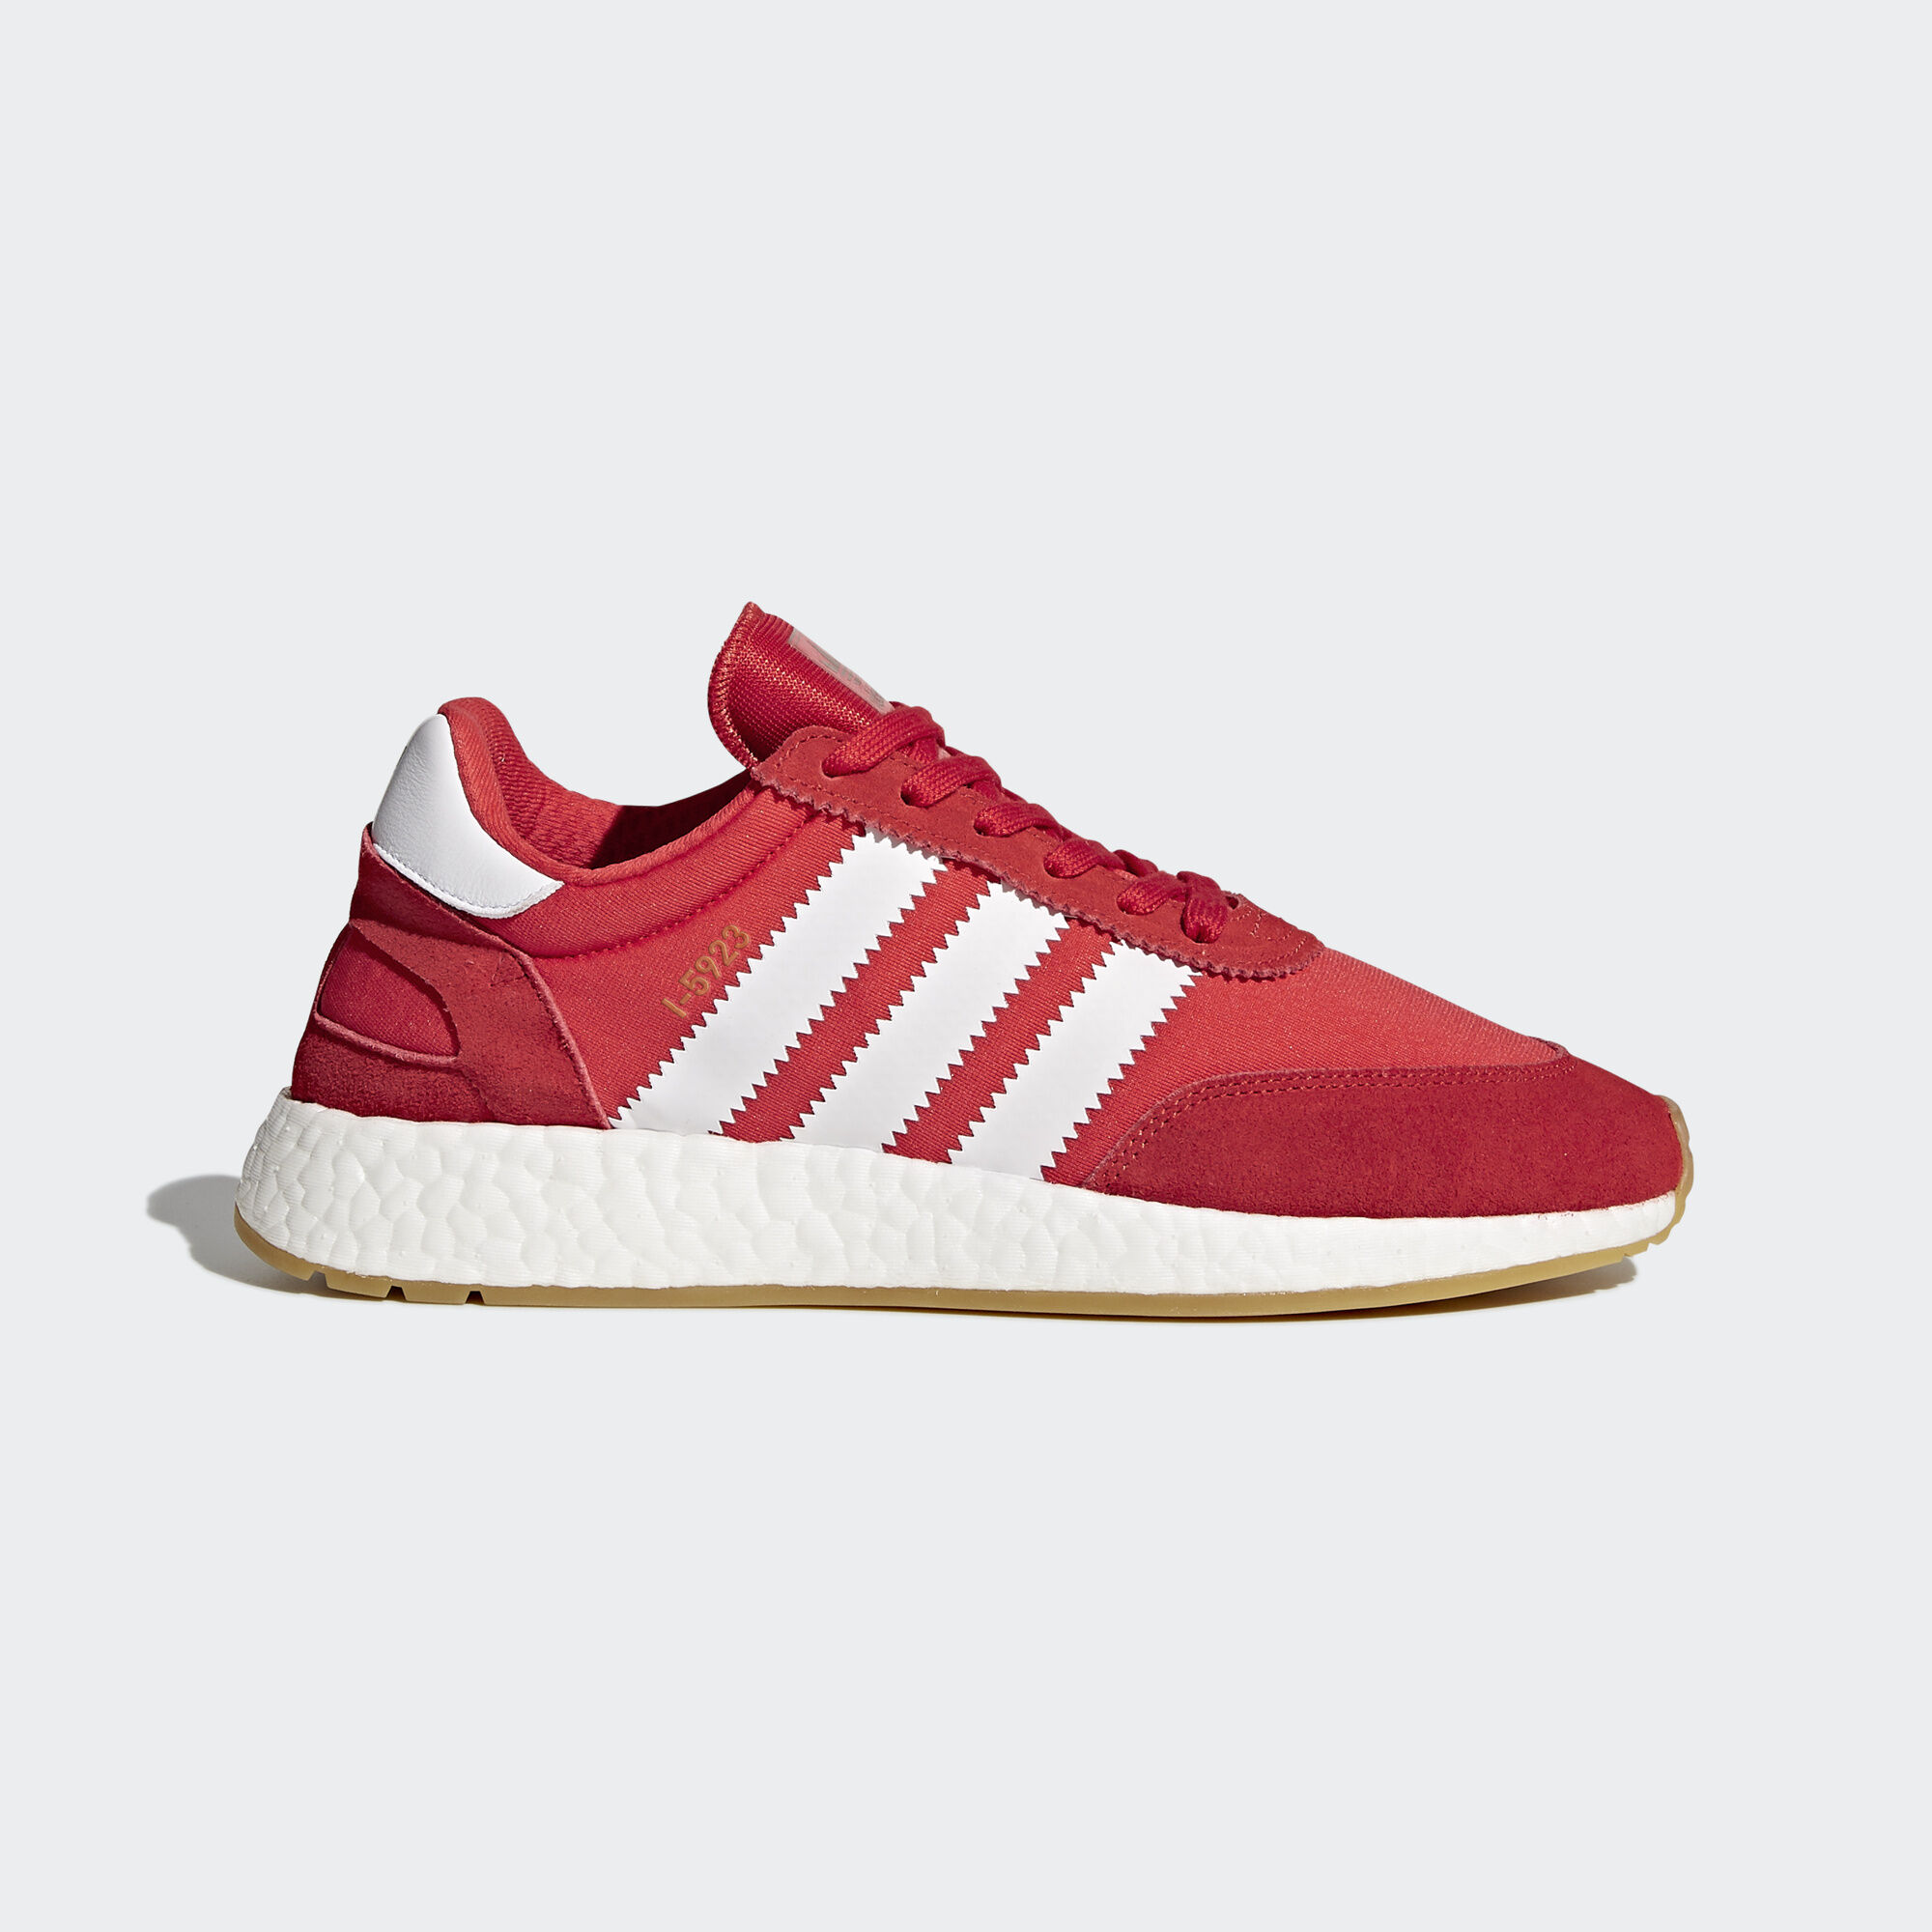 17f1f4021aa8e http   demandware.edgesuite.net sits pod14-adidas  dw image v2 aagl prd on demandware.static - Sites-adidas-products default dw33b9e6e5 zoom   ...